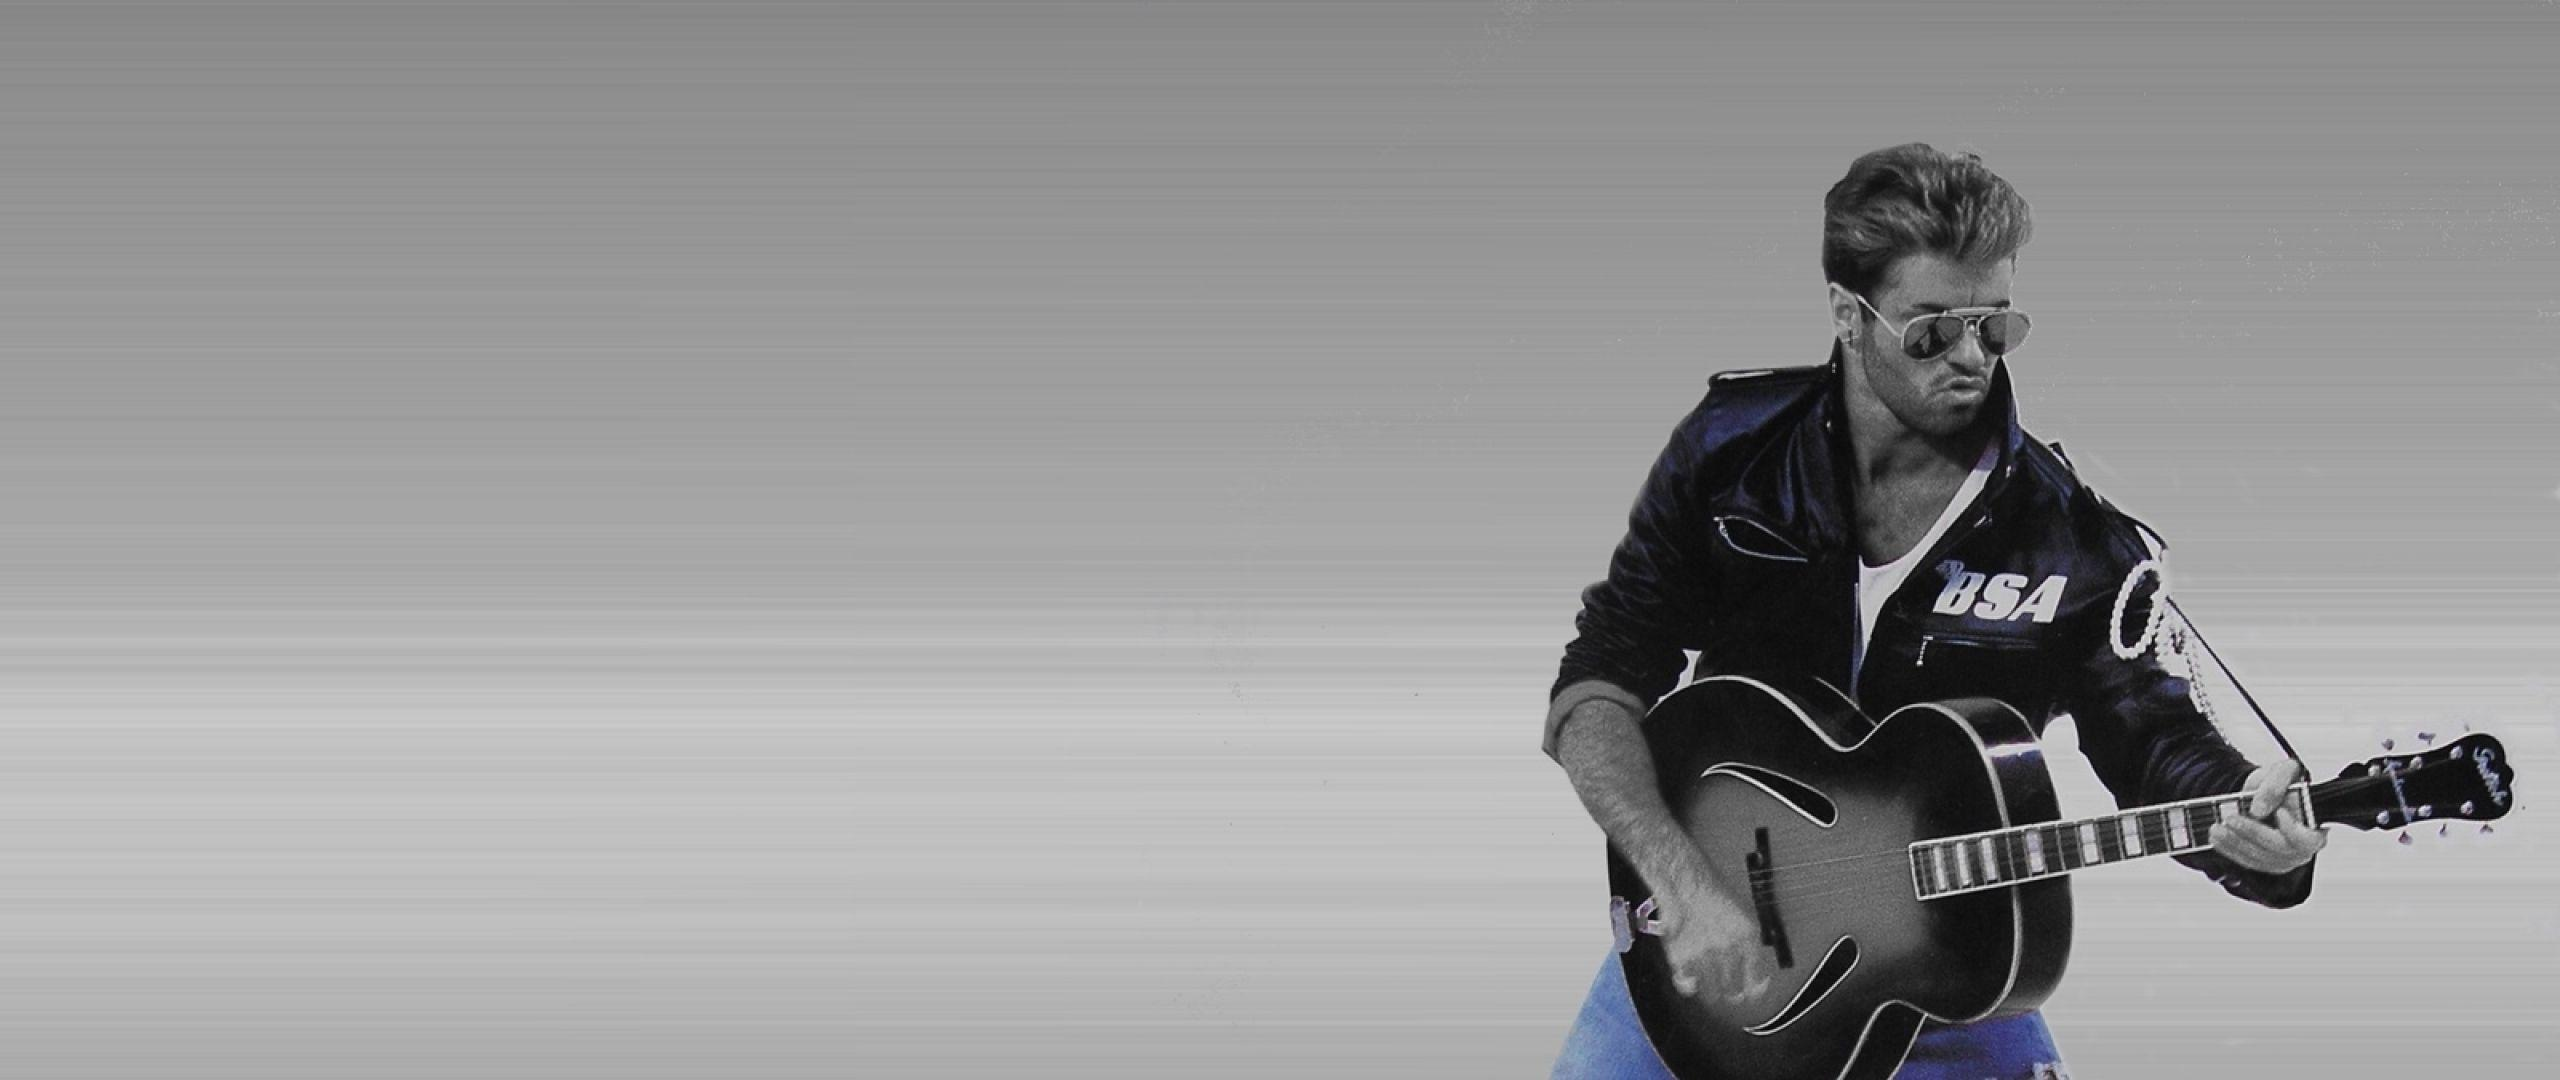 Download Wallpapers 2560x1080 George michael, Glasses, Guitar